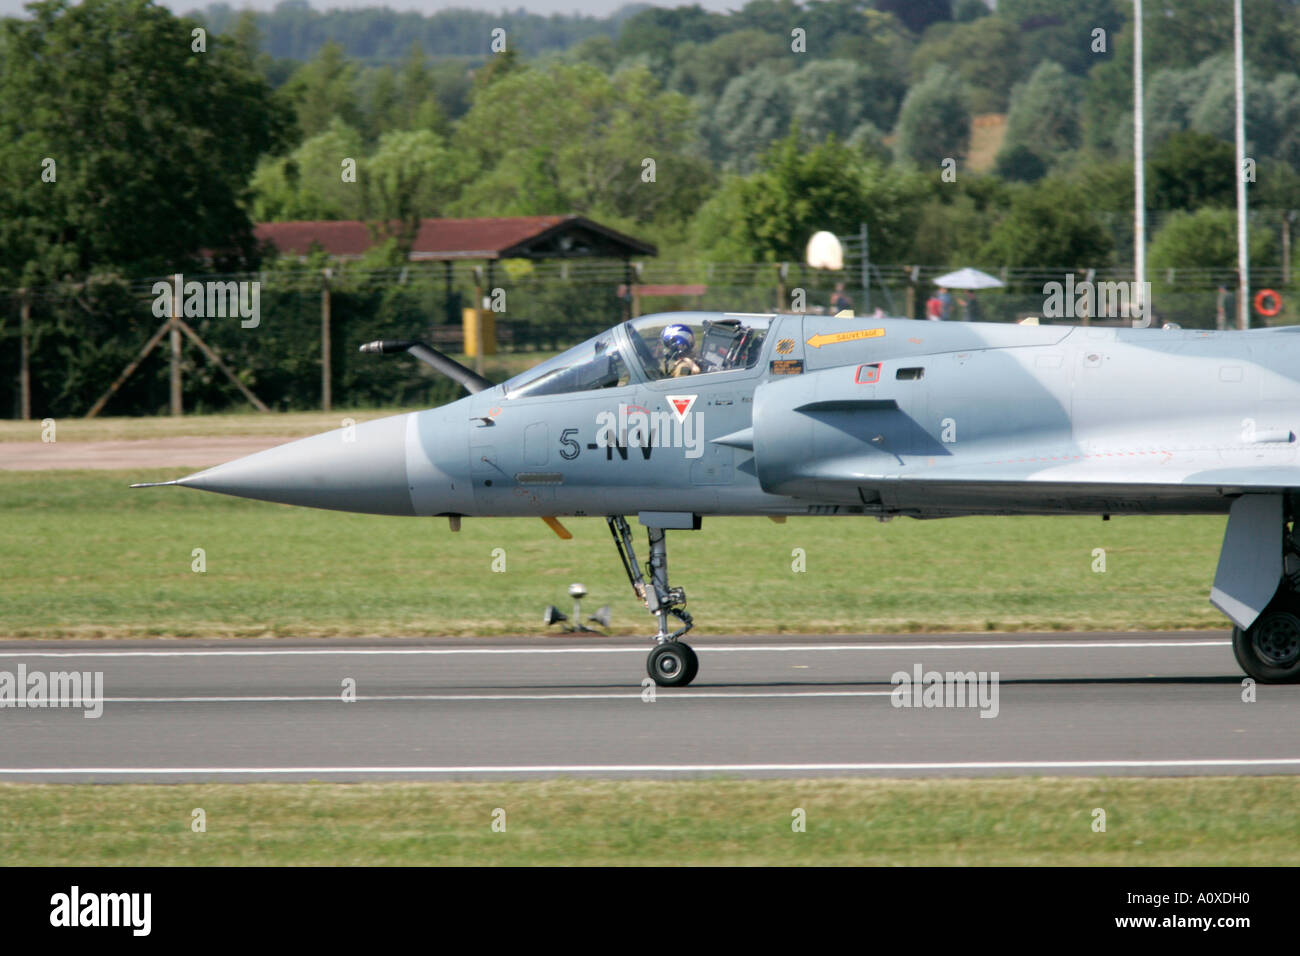 French AF Mirage 2000C lands on runway at RIAT 2005 RAF Fairford Gloucestershire England UK - Stock Image